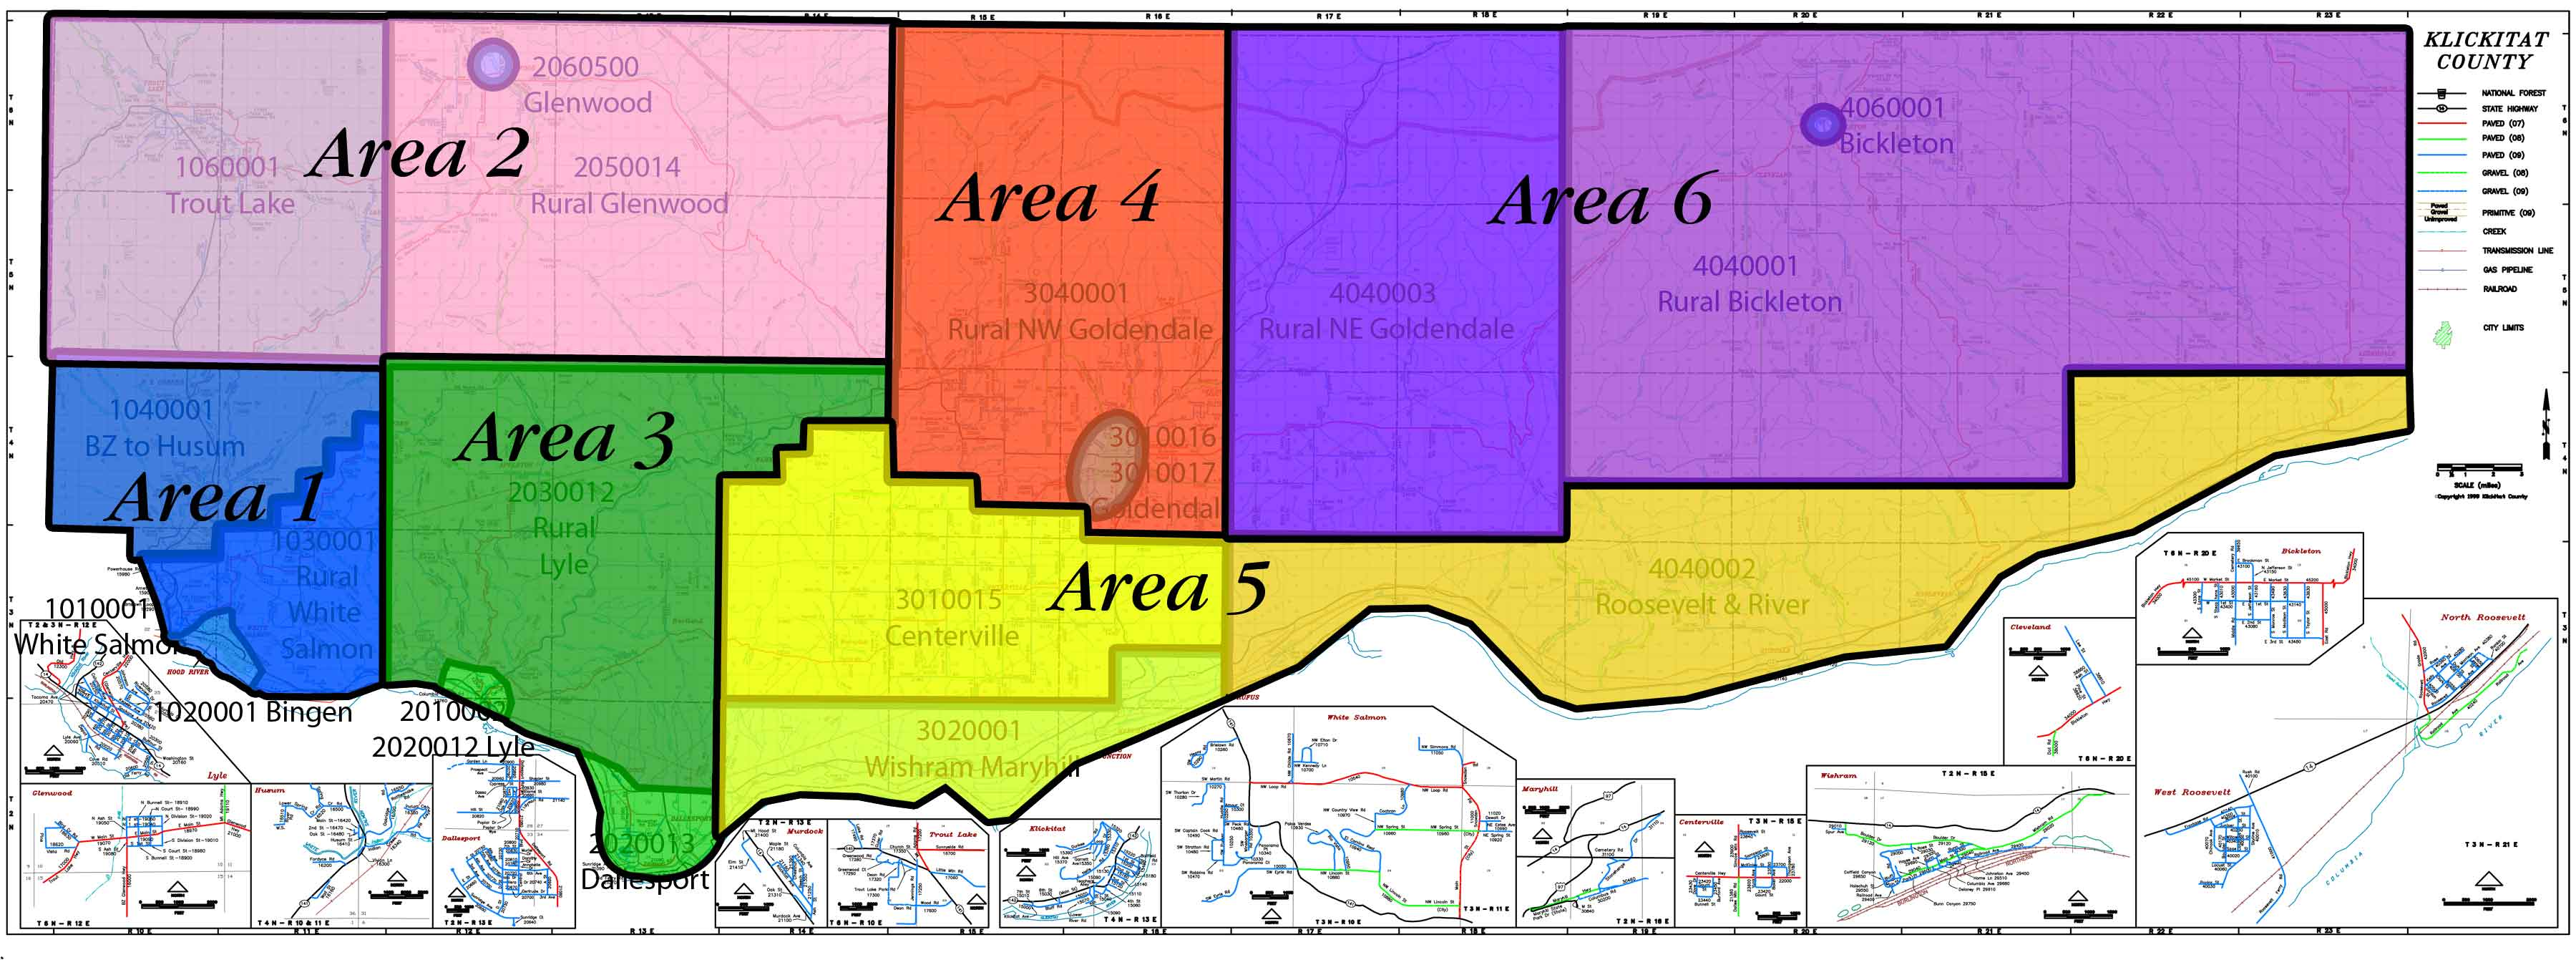 Klickitat County Appraisal Areas